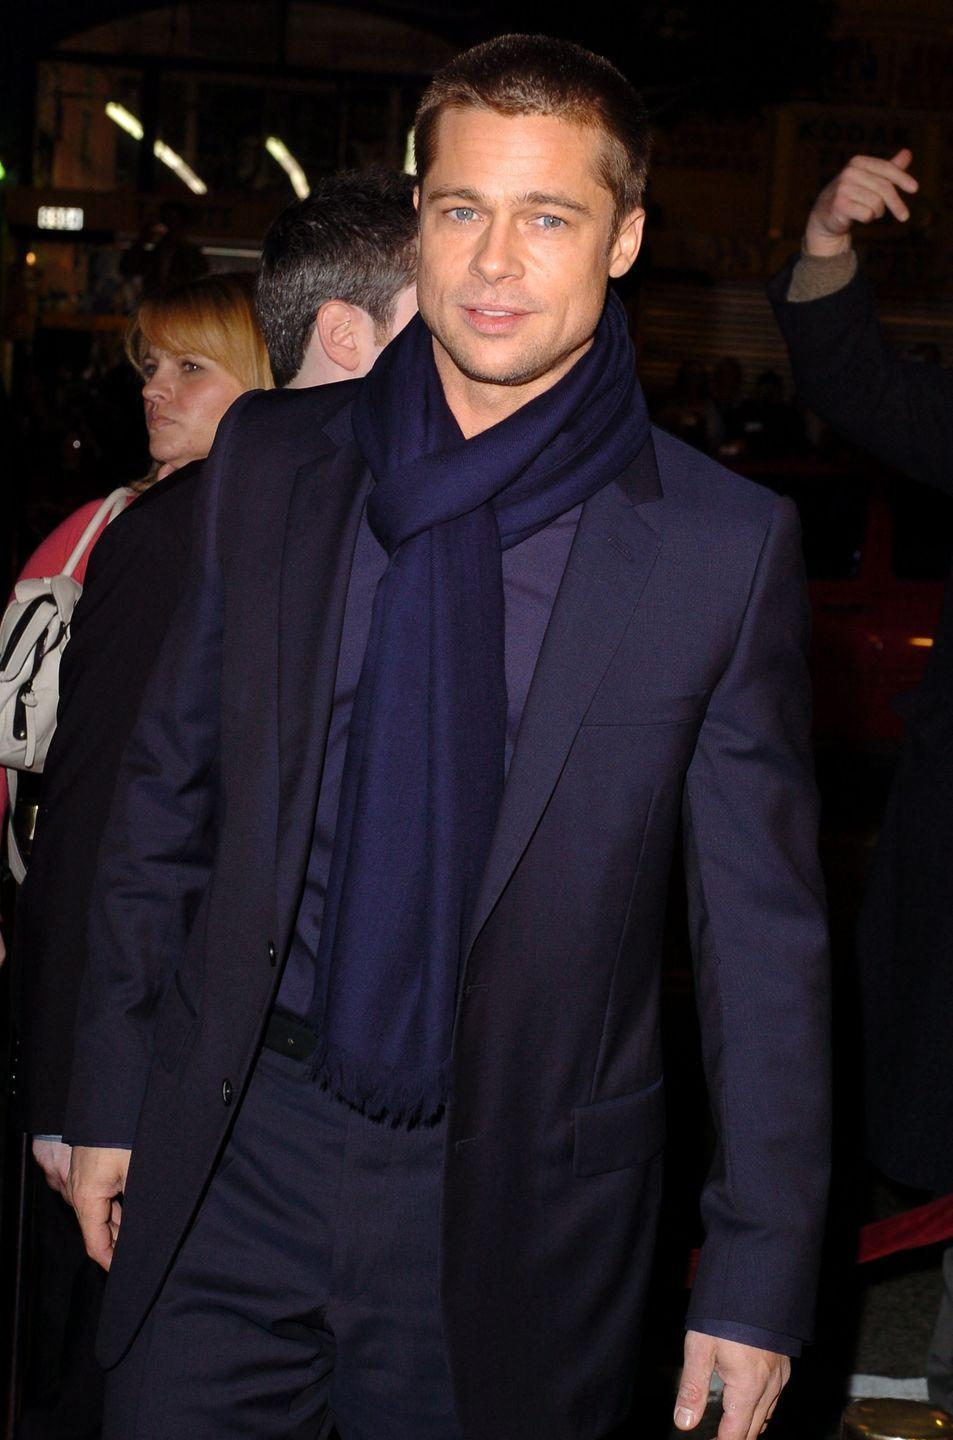 <p>Pitt starred in two blockbusters, <em>Troy</em> and <em>Ocean's 12</em>, the year he turned 40<em>. </em>He also started filming <em>Mr. and Mrs. Smith</em>, the movie on which he met Angelina Jolie. </p>